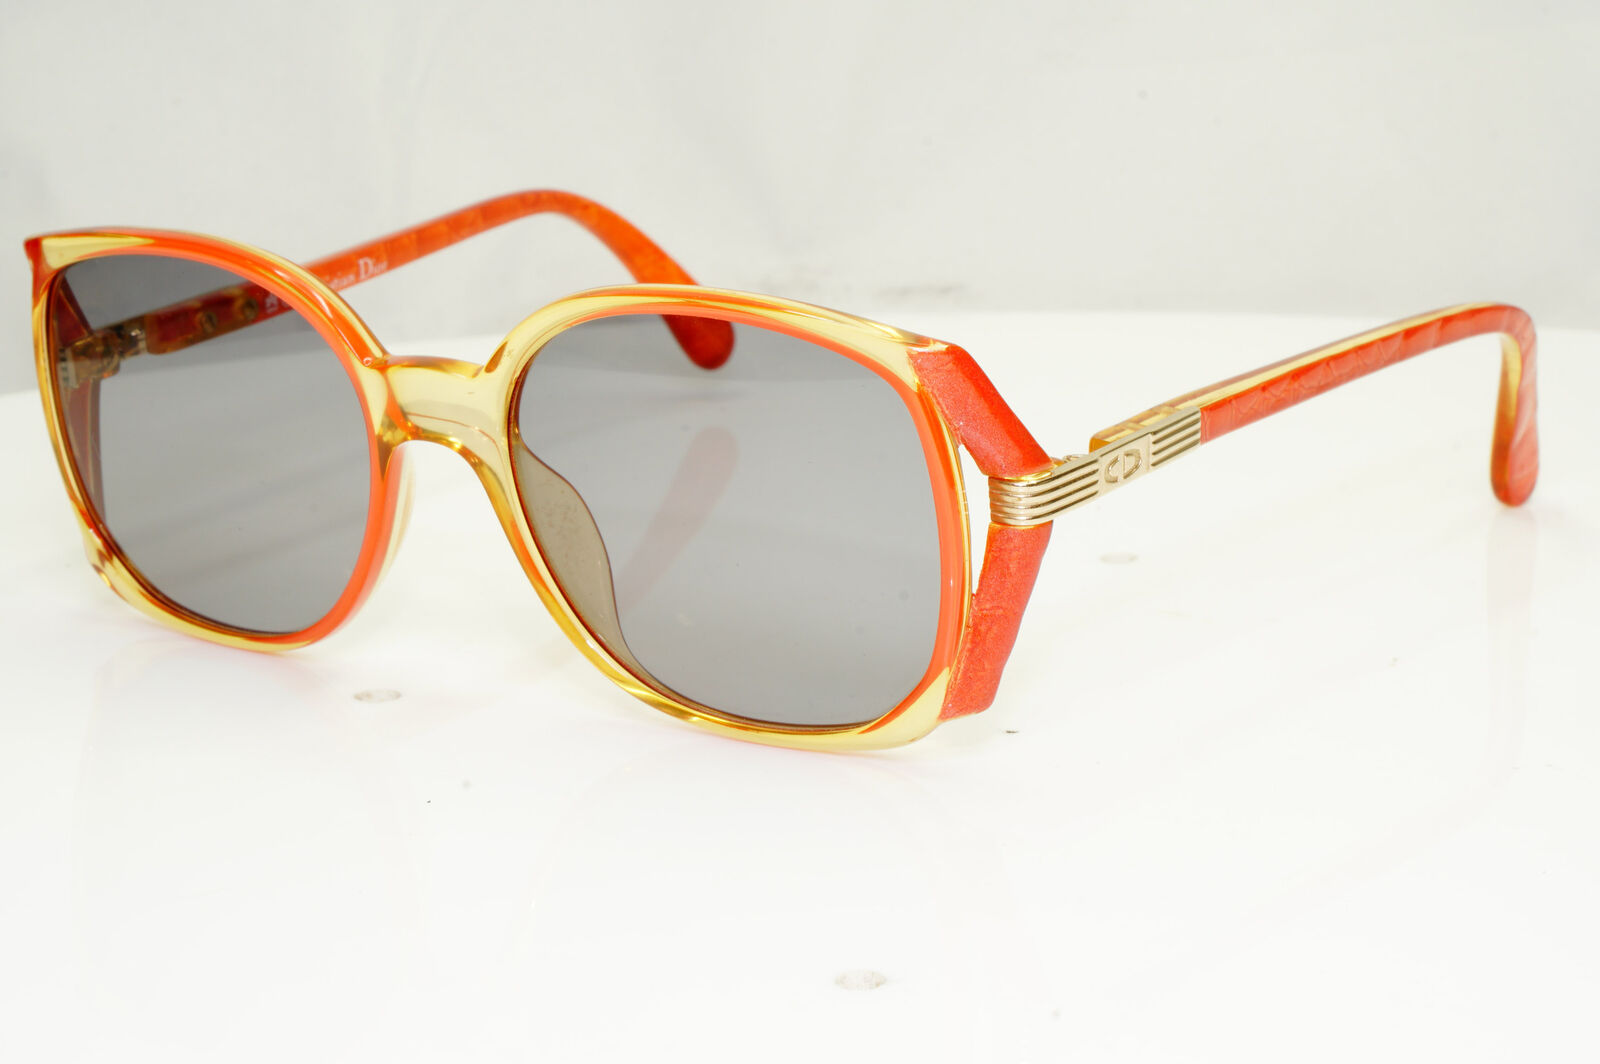 Authentic Christian Dior Vintage Sunglasses 1990s Germany Red 2366 30 33344